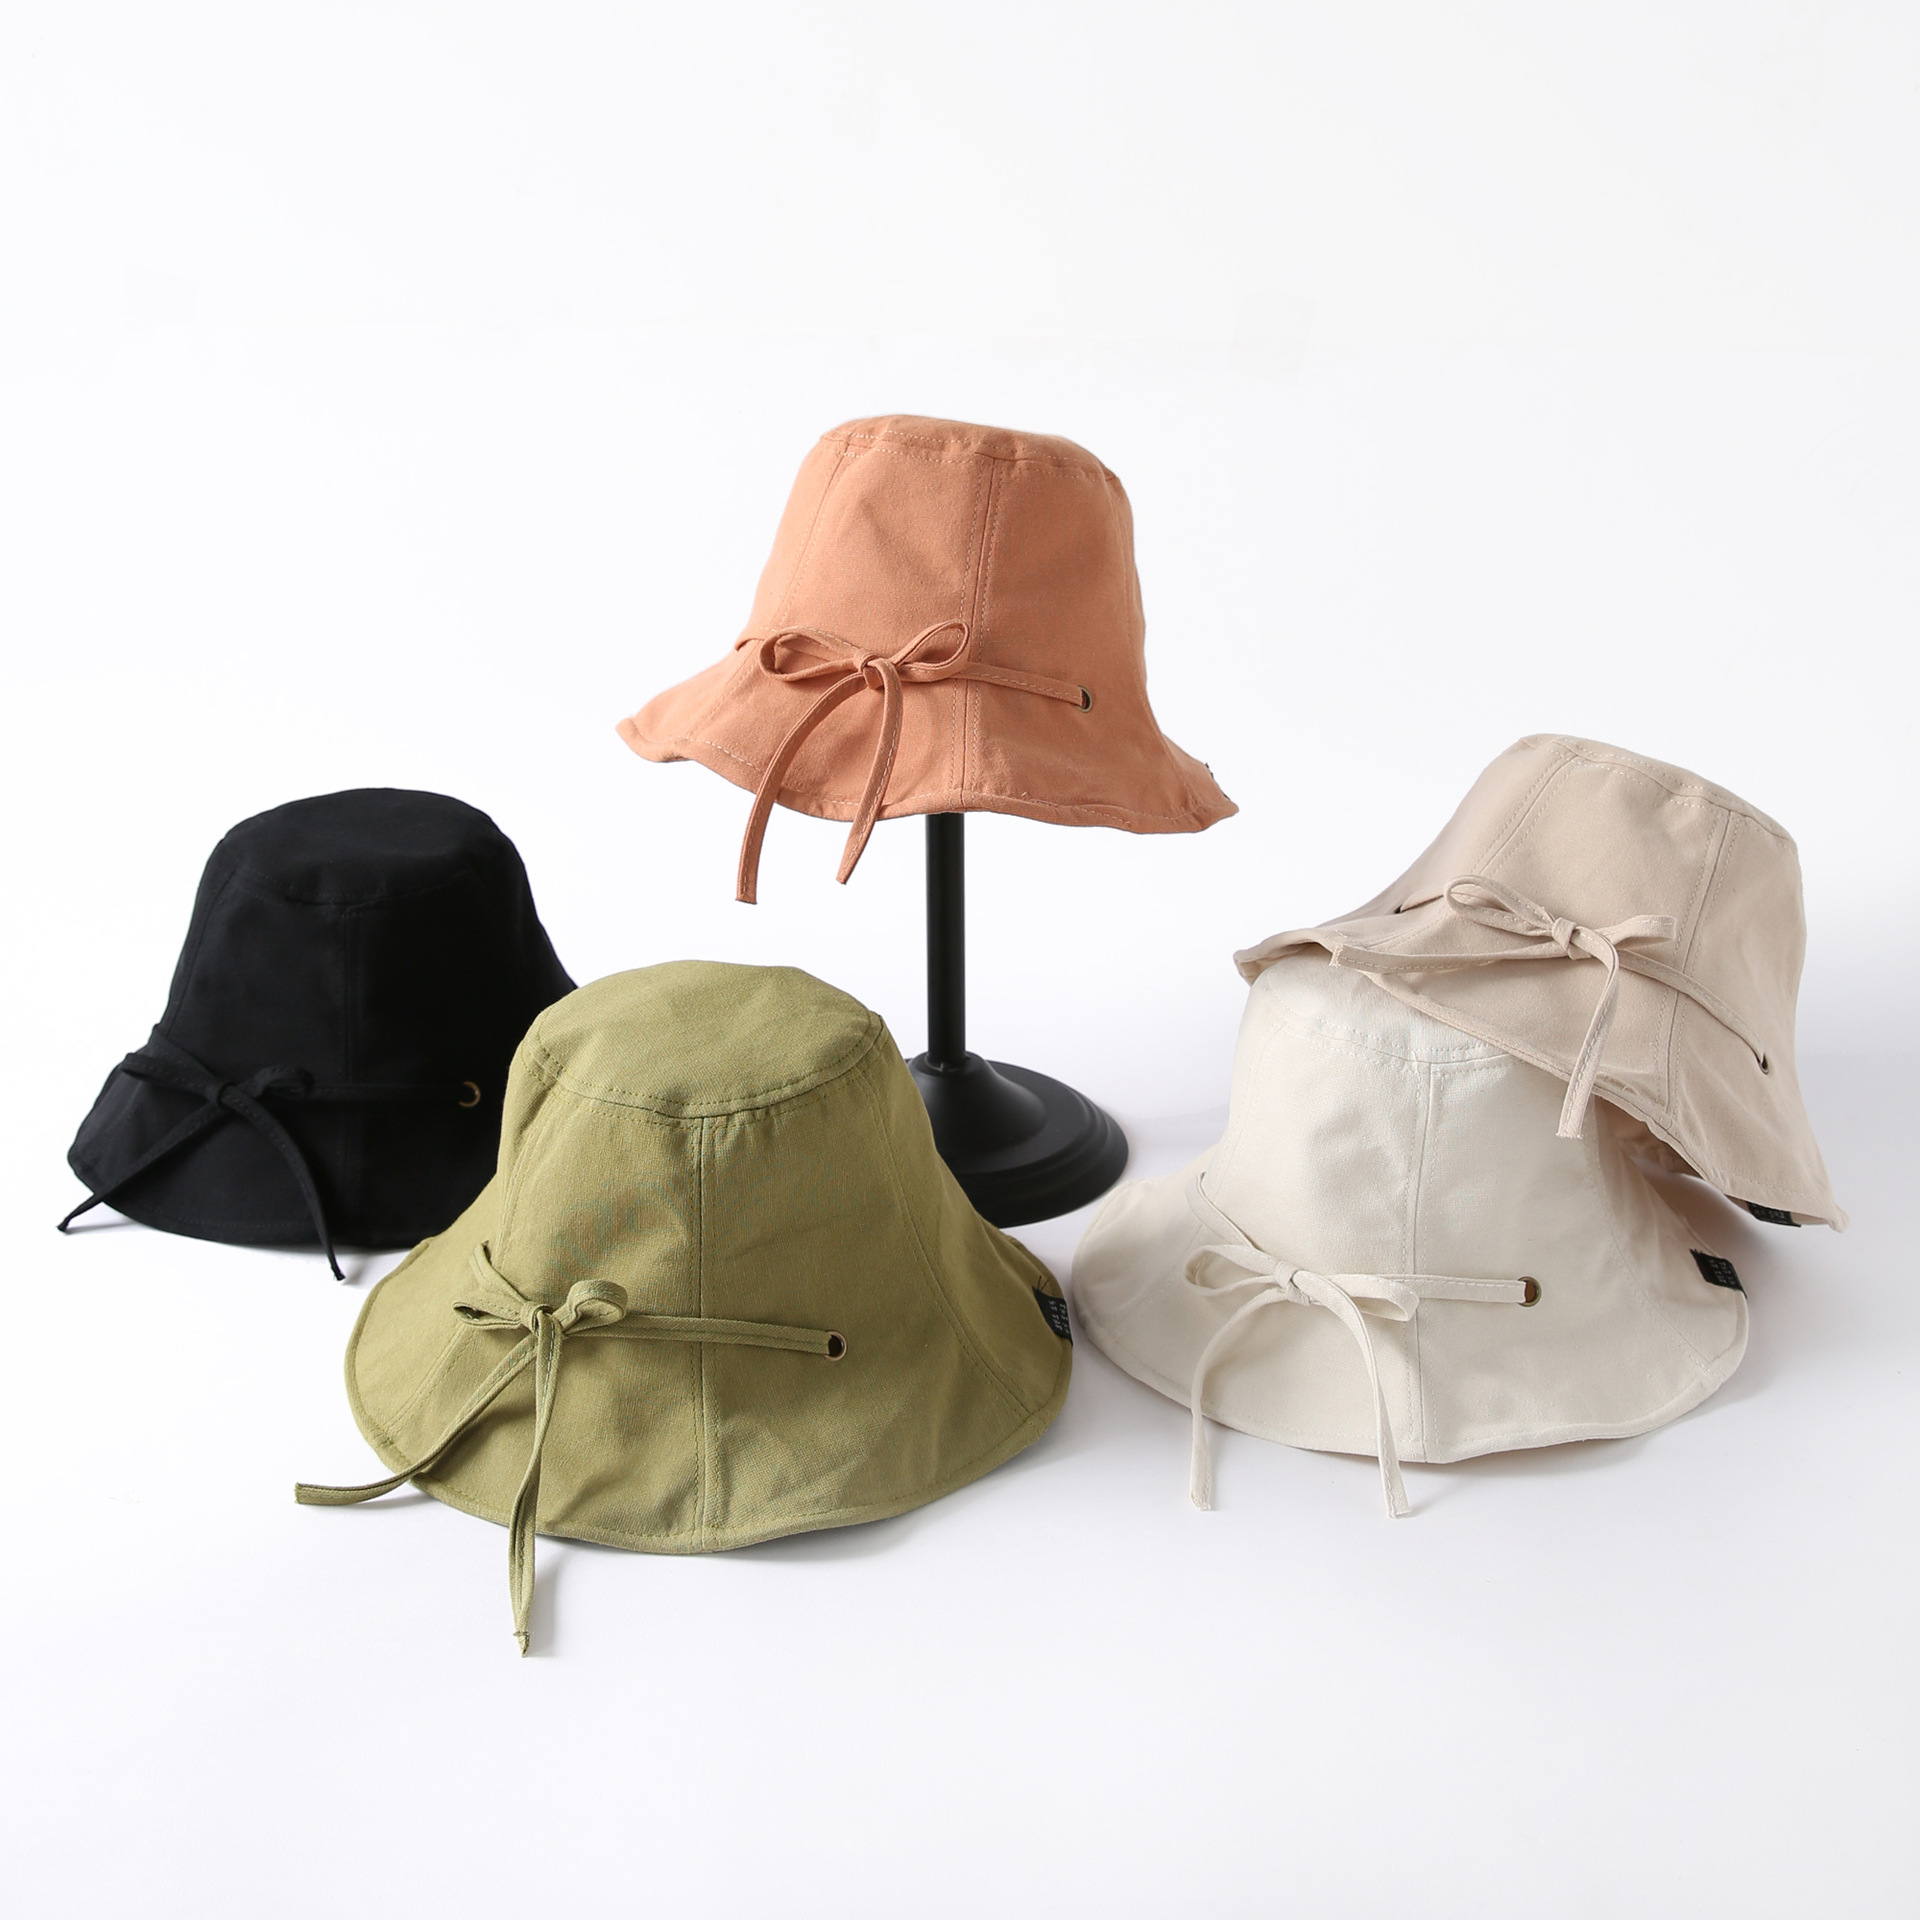 Franch Style Elegant Bucket Hat Women Fashion Summer Beach Sun Outdoors Fisherman Bucket Hat Panama For 90's Girls